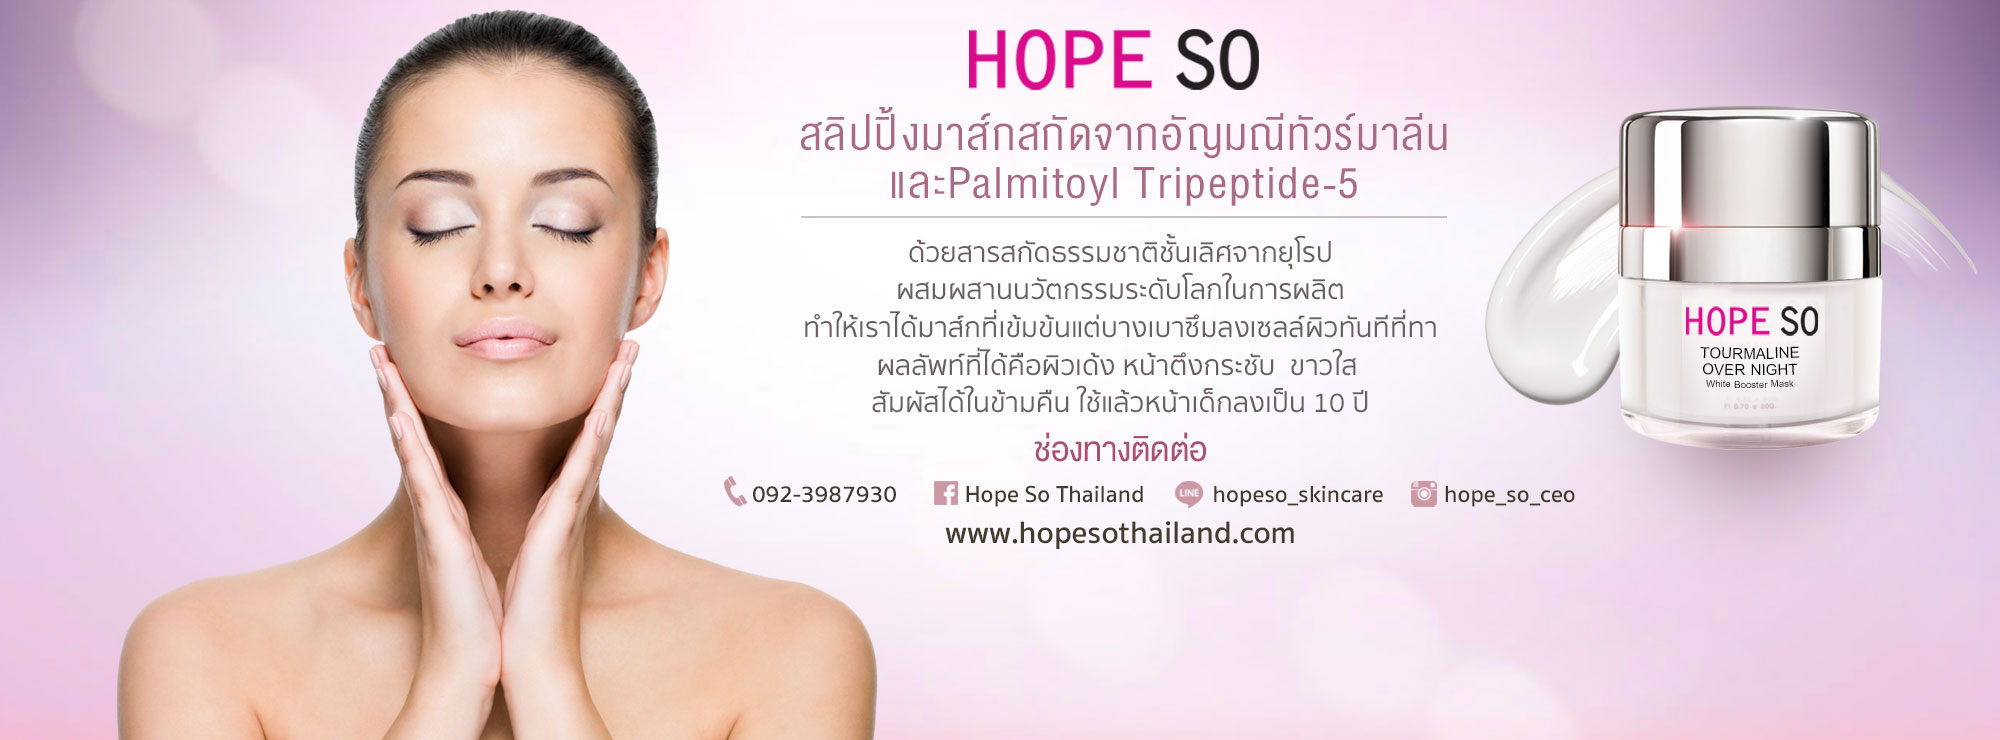 cover-hope-so